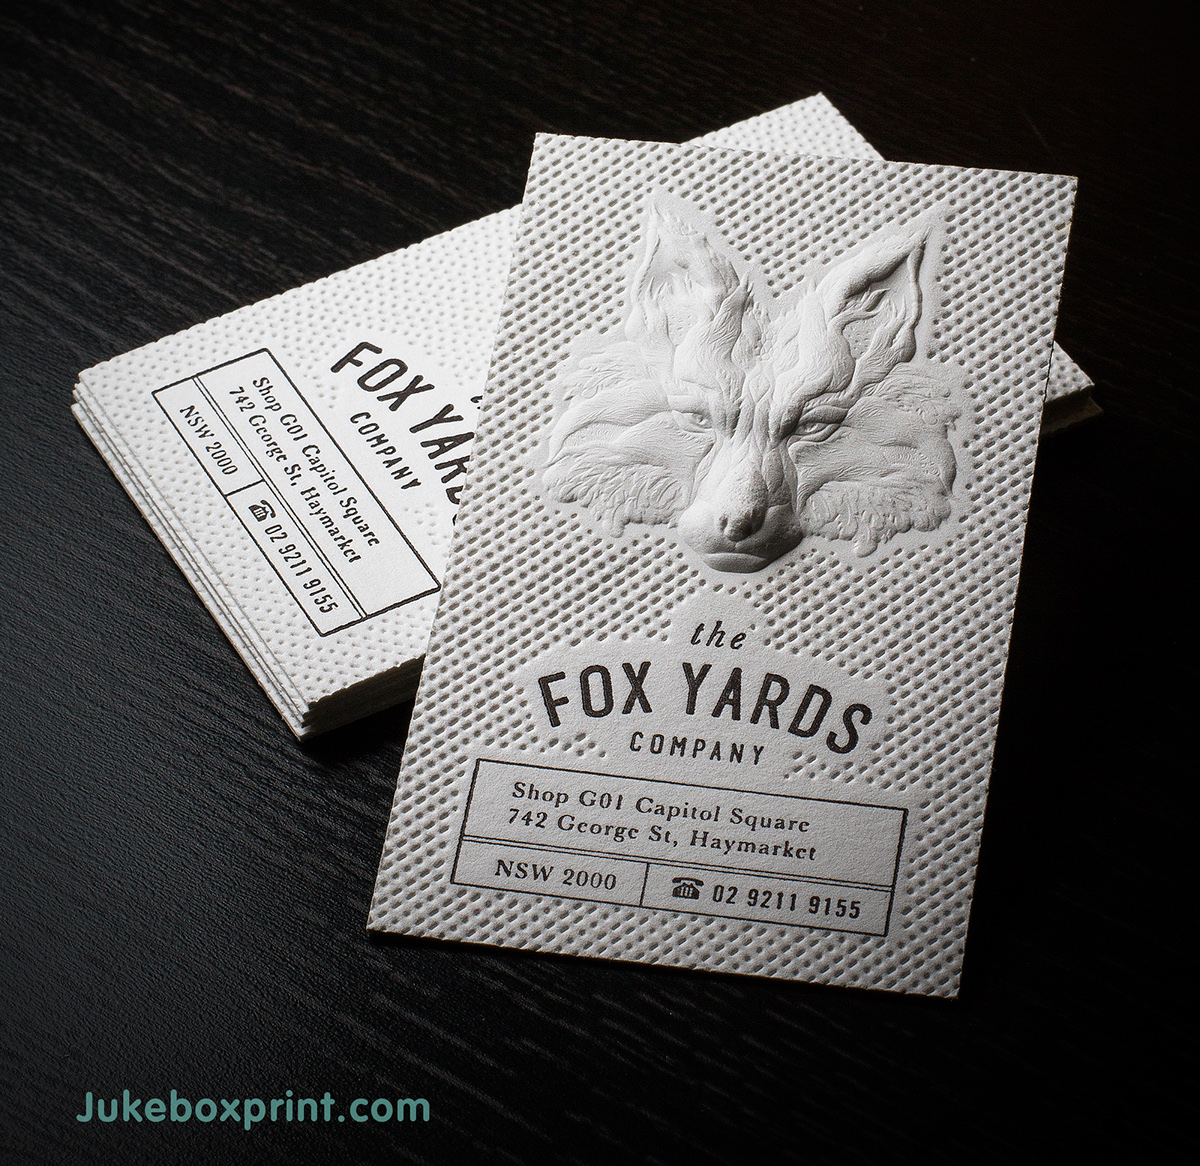 The Fox Yards Company